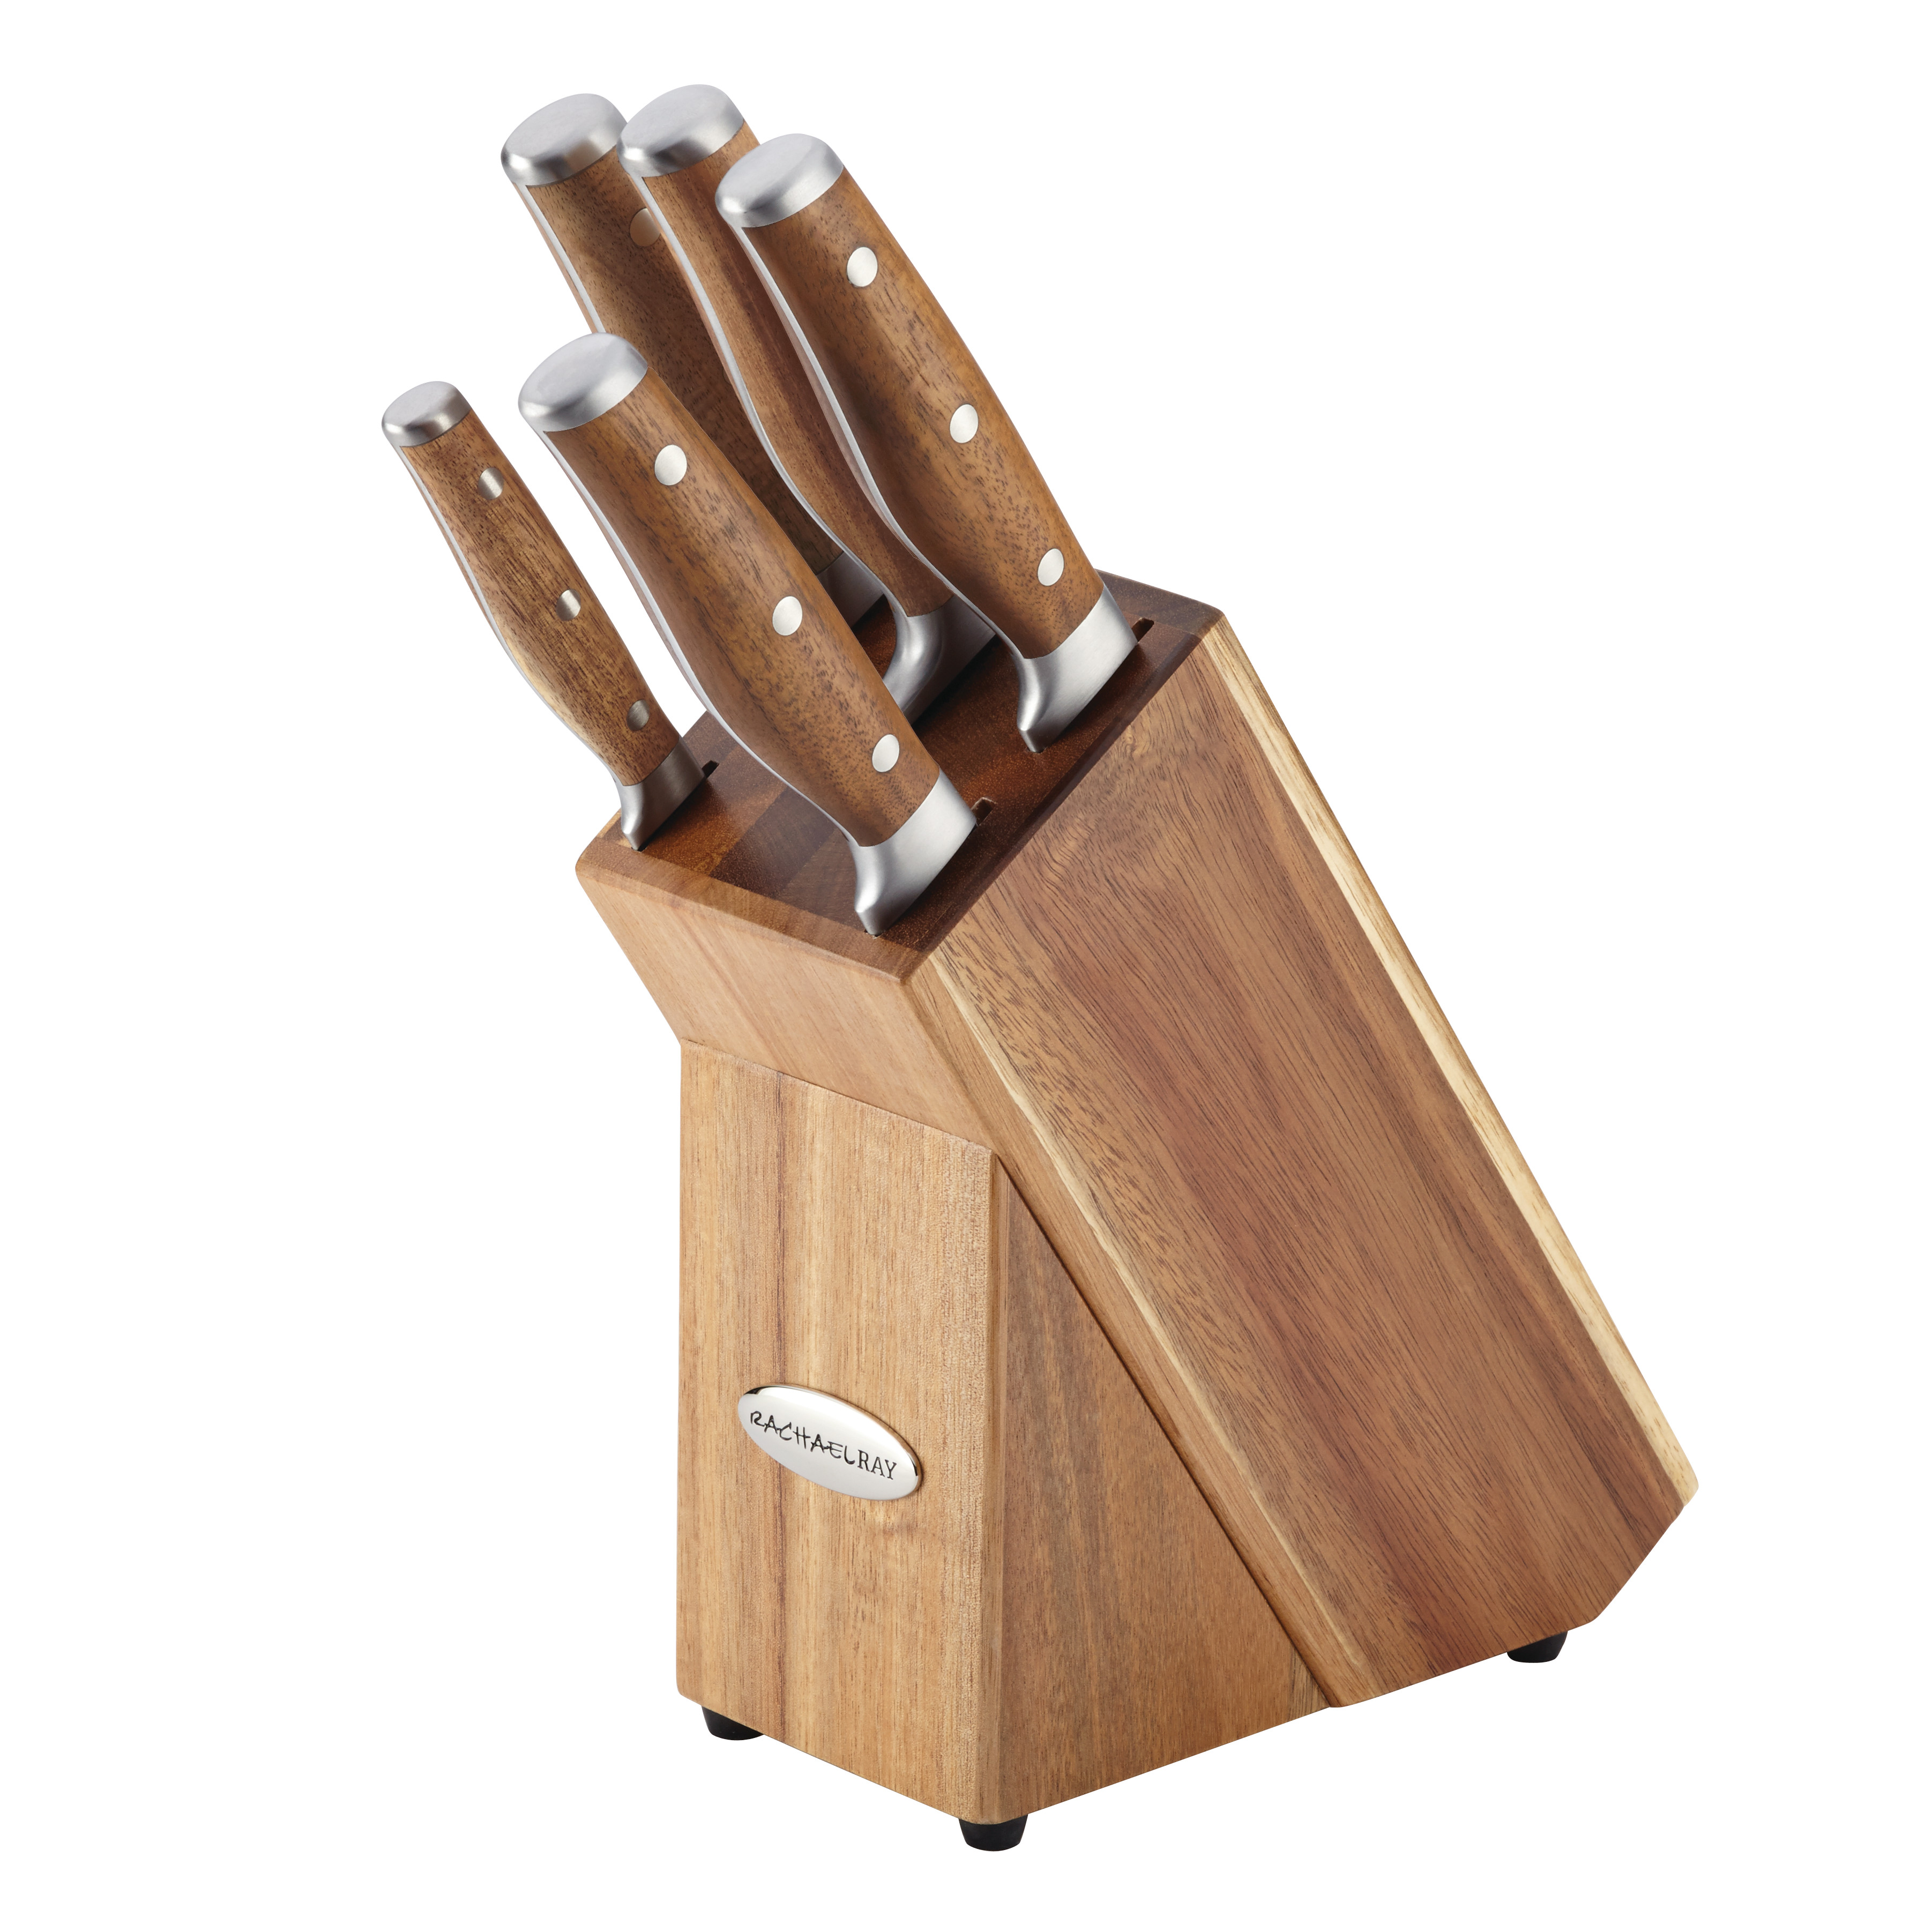 Rachael Ray Cucina Cutlery 6-Piece Japanese Stainless Steel Knife Block Set with Acacia Handles